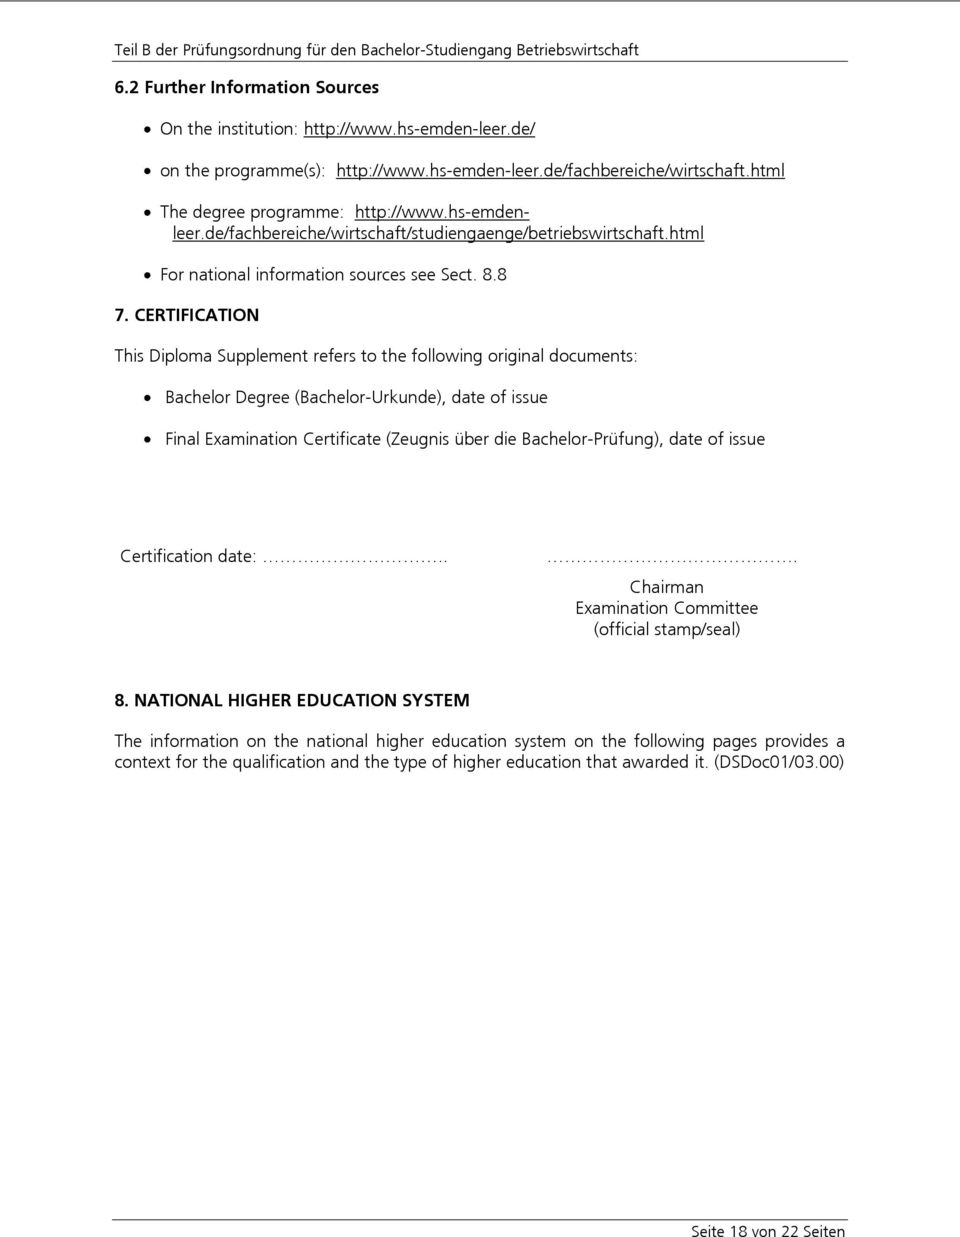 CERTIFICATION This Diploma Supplement refers to the following original documents: Bachelor Degree (Bachelor-Urkunde), date of issue Final Examination Certificate (Zeugnis über die Bachelor-Prüfung),